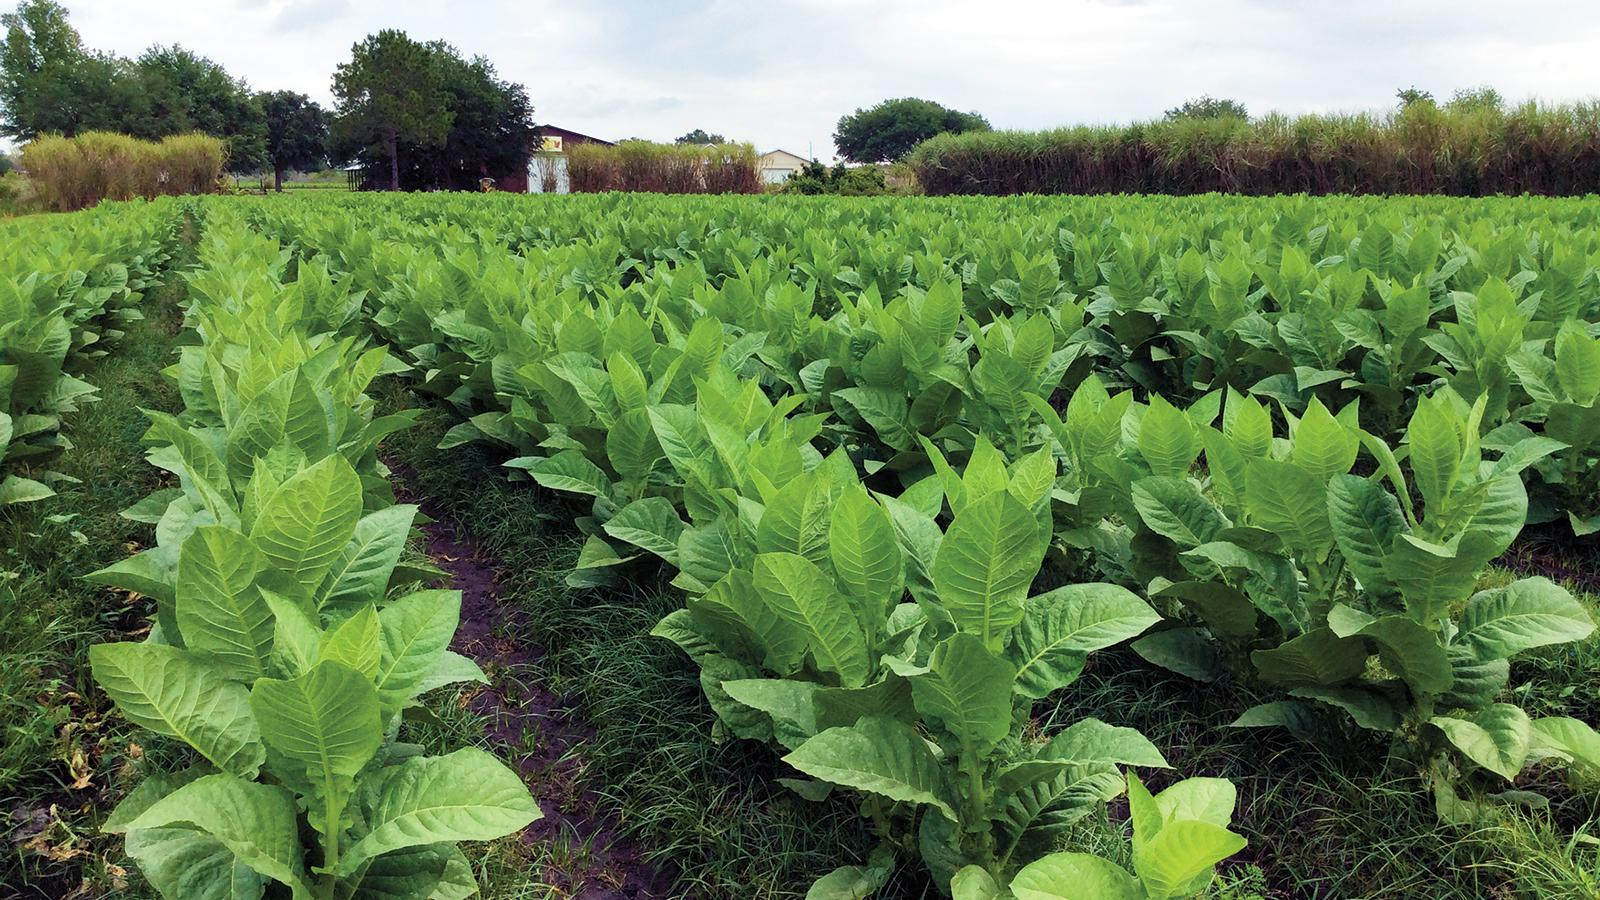 A tobacco field in Clermont, Florida.